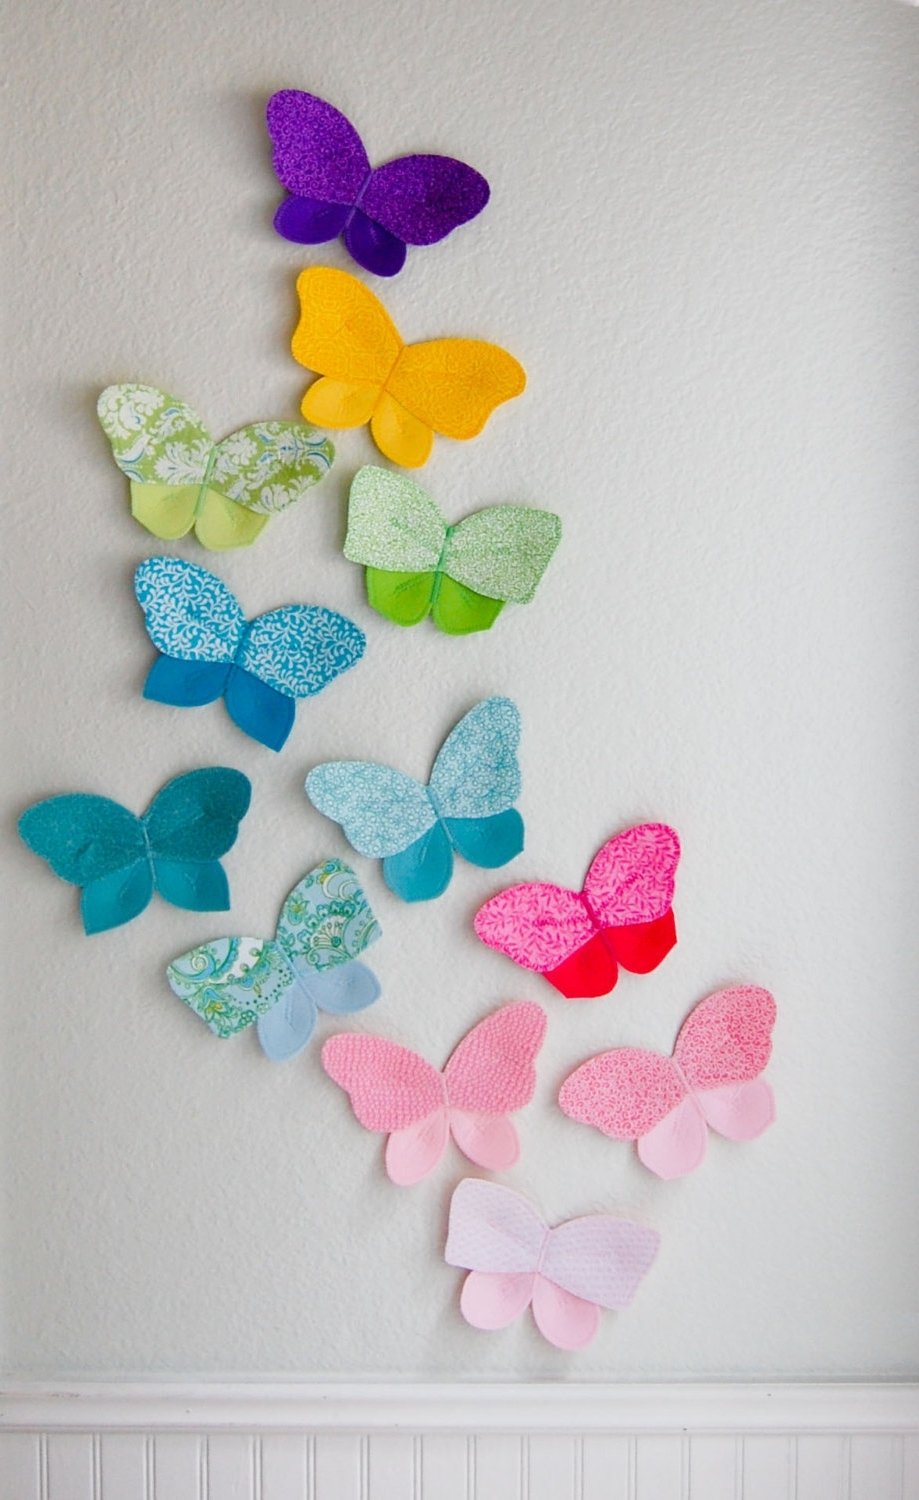 3d Fabric Butterfly, Wall Decor For Girls Room, Nursery Decor Within Favorite Fabric Butterfly Wall Art (View 10 of 15)